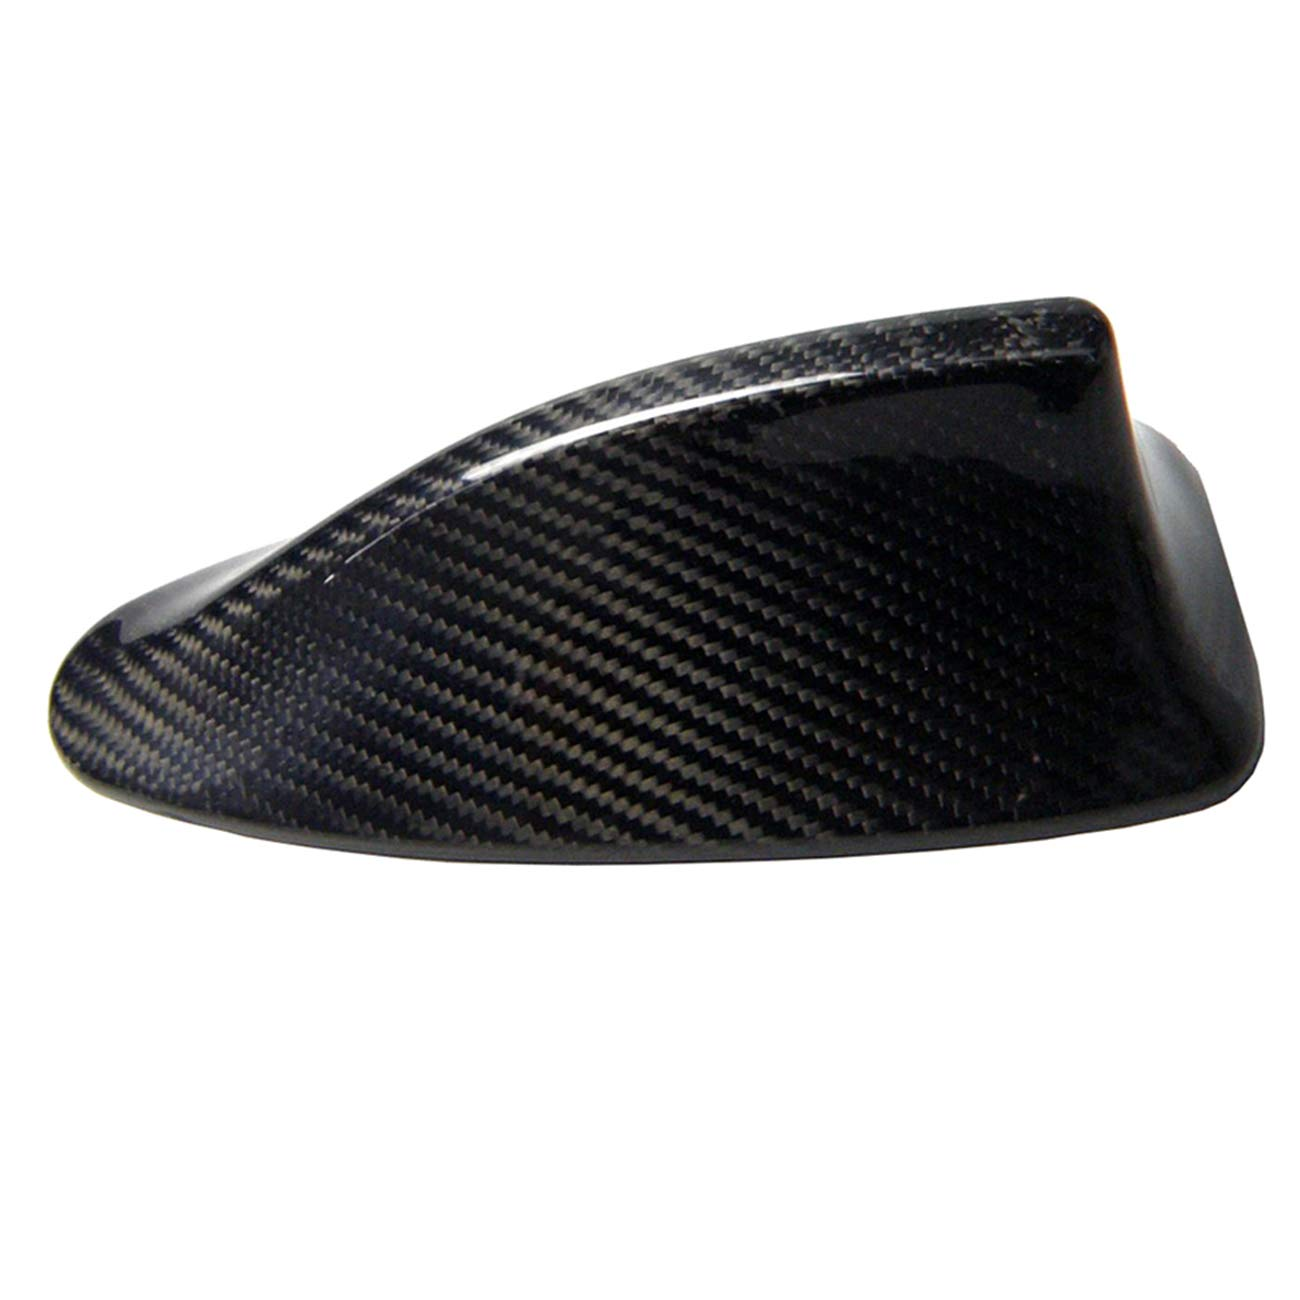 Type C Kipalm Real Carbon Fiber Shark Fin Antenna Cover For BMW E90 E92 M3 F20 F30 F10 F34 G30 M5 F15 F16 F21 F45 F56 F01 F80 Antenna Cover